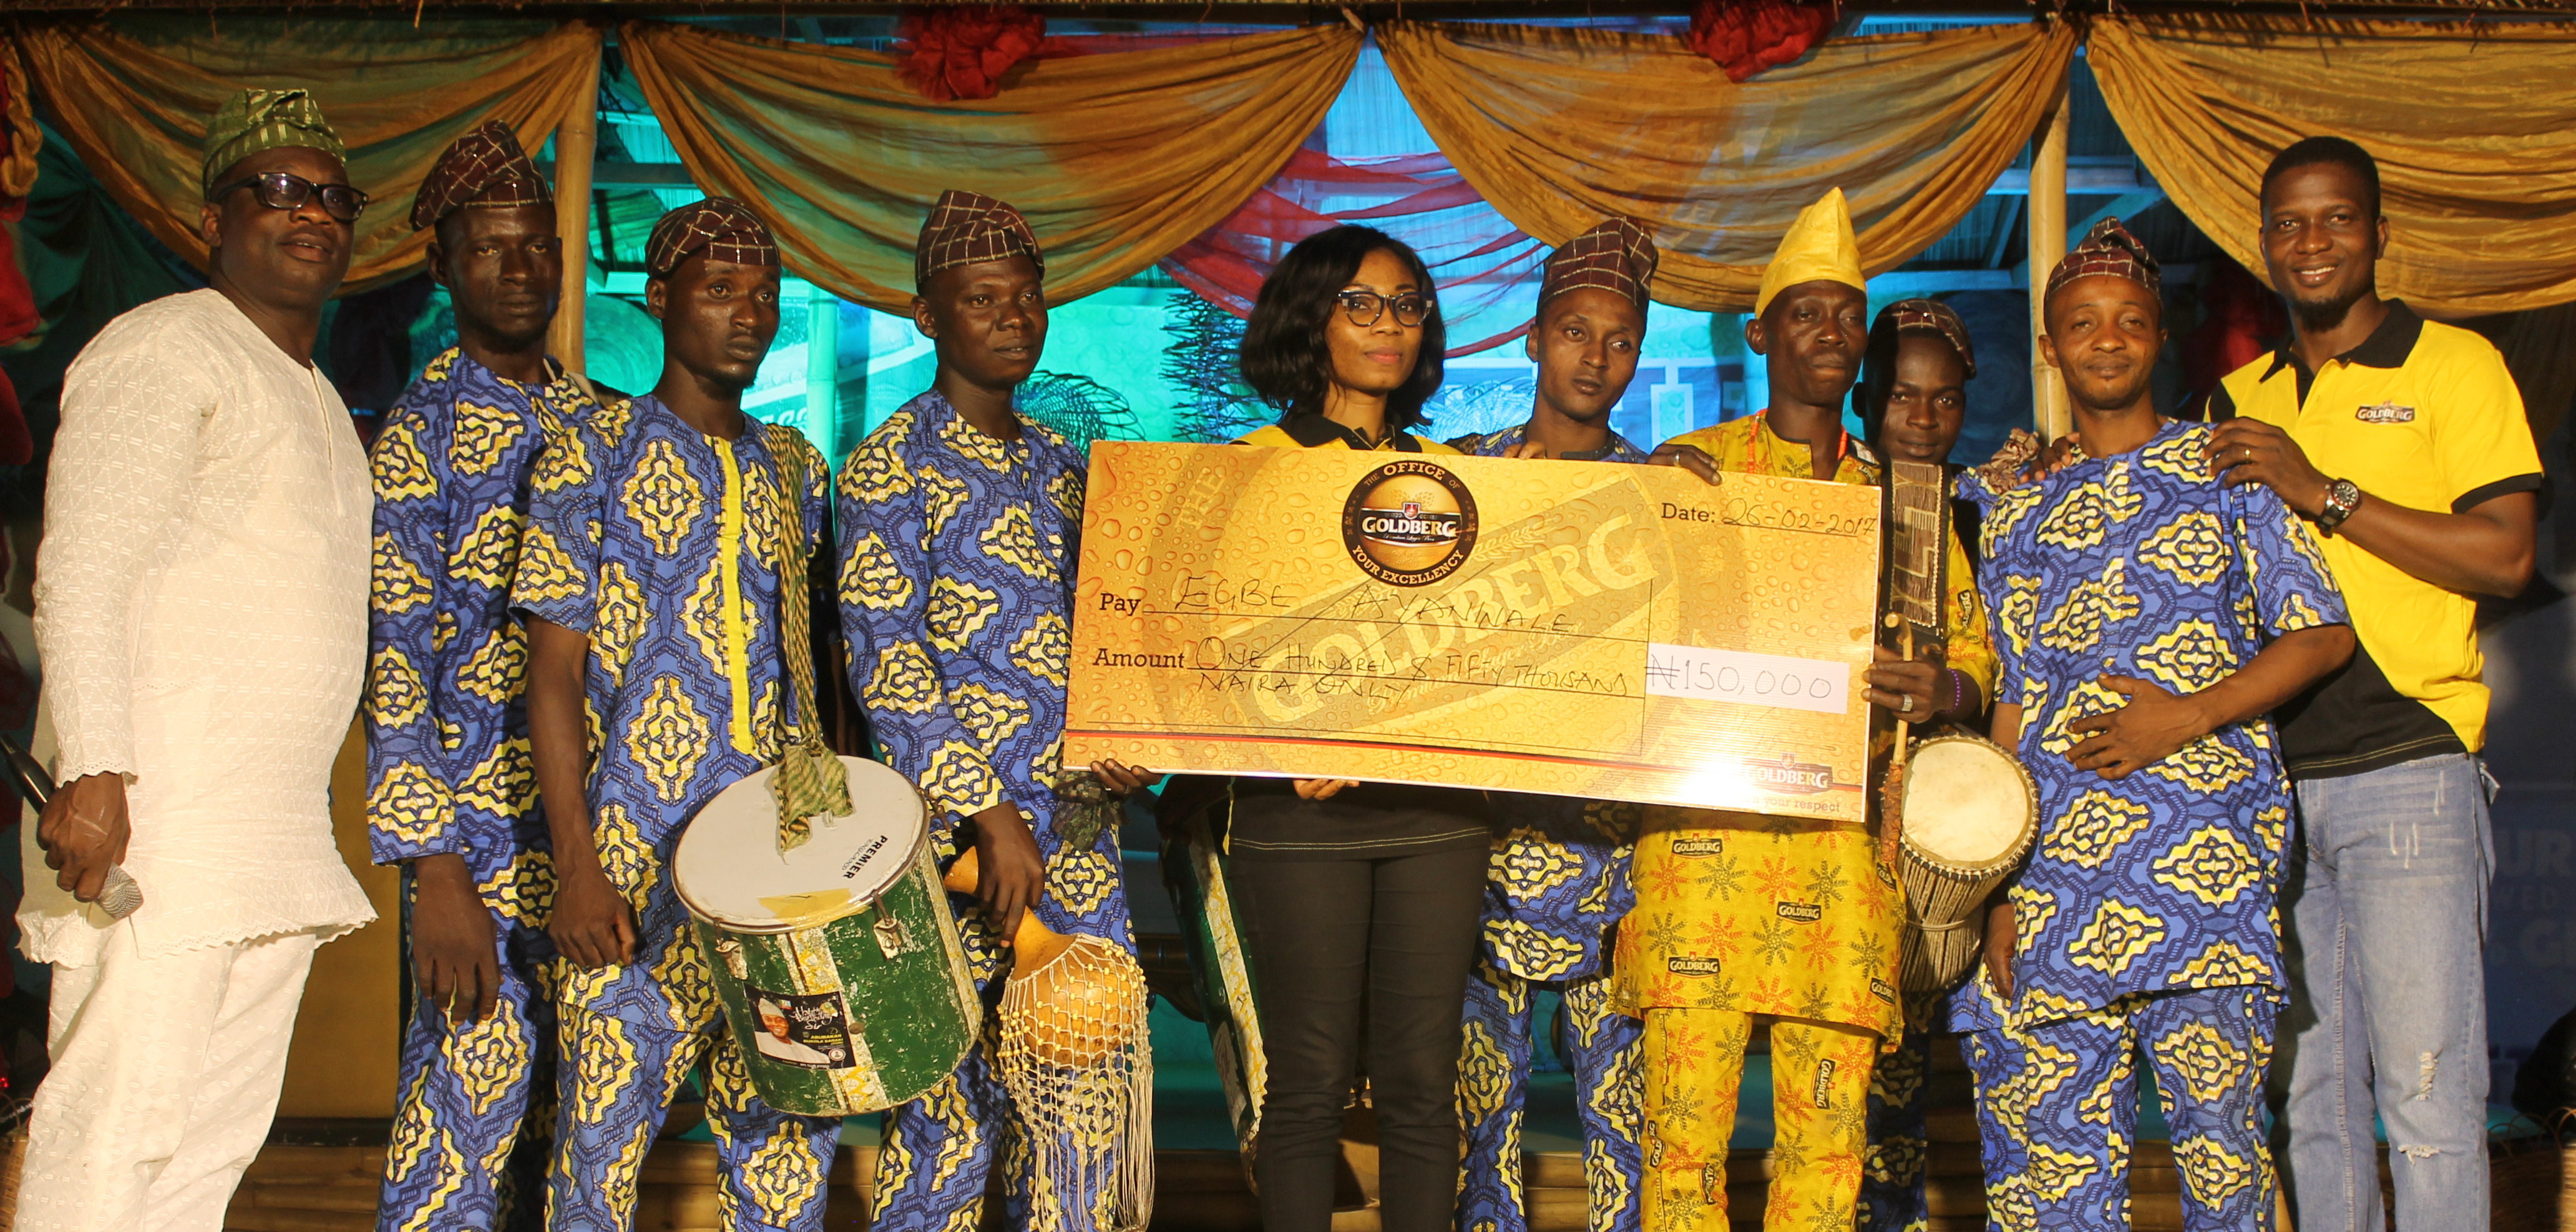 Ayotola Owolabi, Assistant Trade Marketing Manager, Nigerian Breweries Plc, presenting a cheque of One Hundred and Fifty Thousand Naira to Egbe Ayanwale Band, winner of the second prize at the Goldberg Excellency Tour in Ilorin on Sunday. With them are Muyiwa Oshinaike, chief judge of the Traditional Drummers Contest (1st from left) and Josiah Akinola, Assistant Brand Manager, Regional Mainstream Brands, Nigerian Breweries Plc (1st from right).